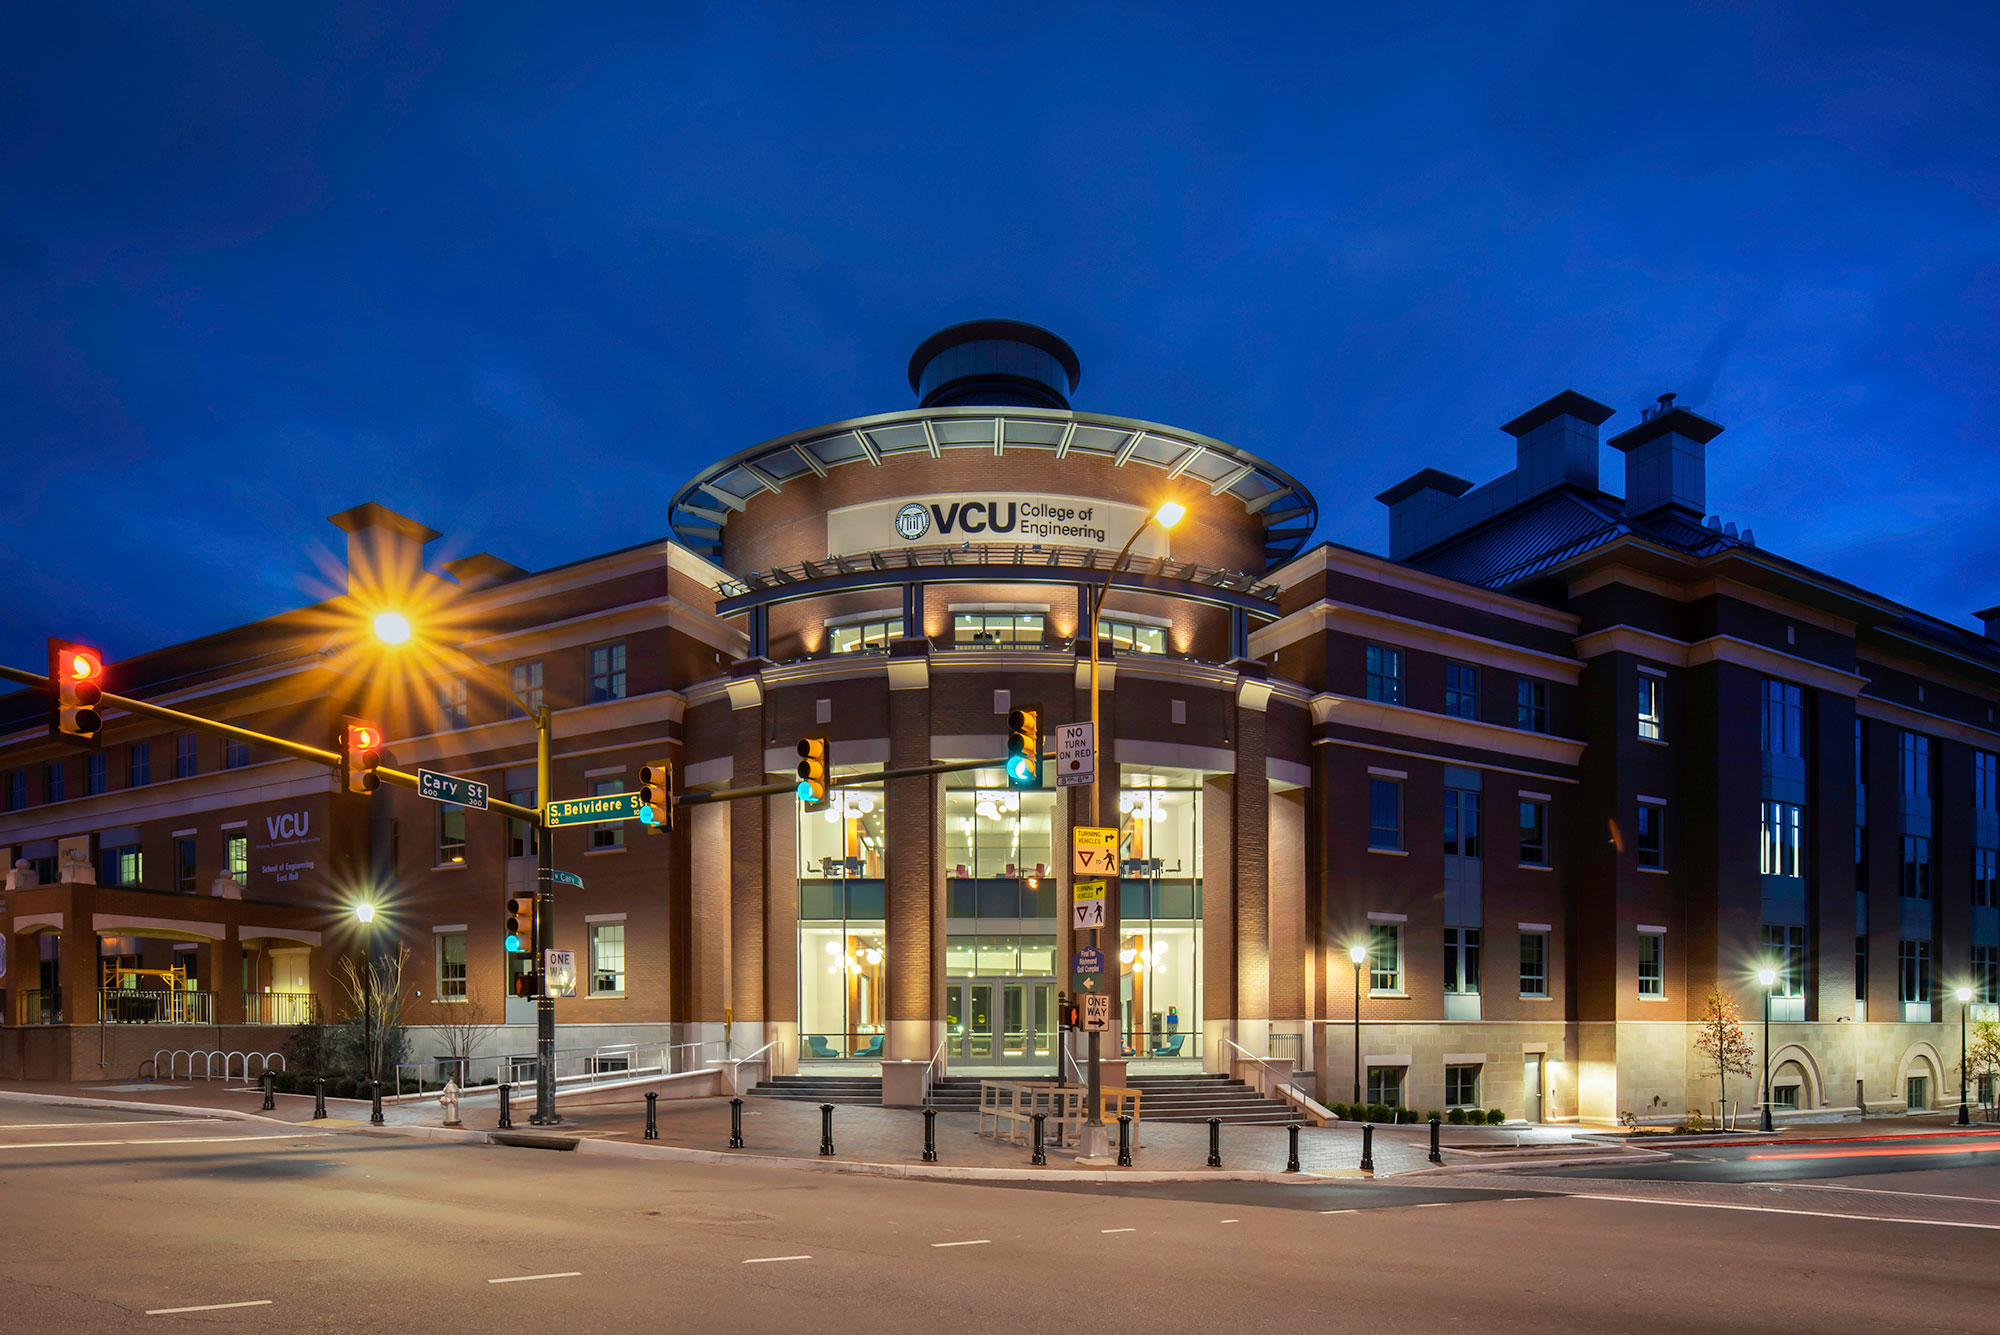 VCU College of Engineering Research Building